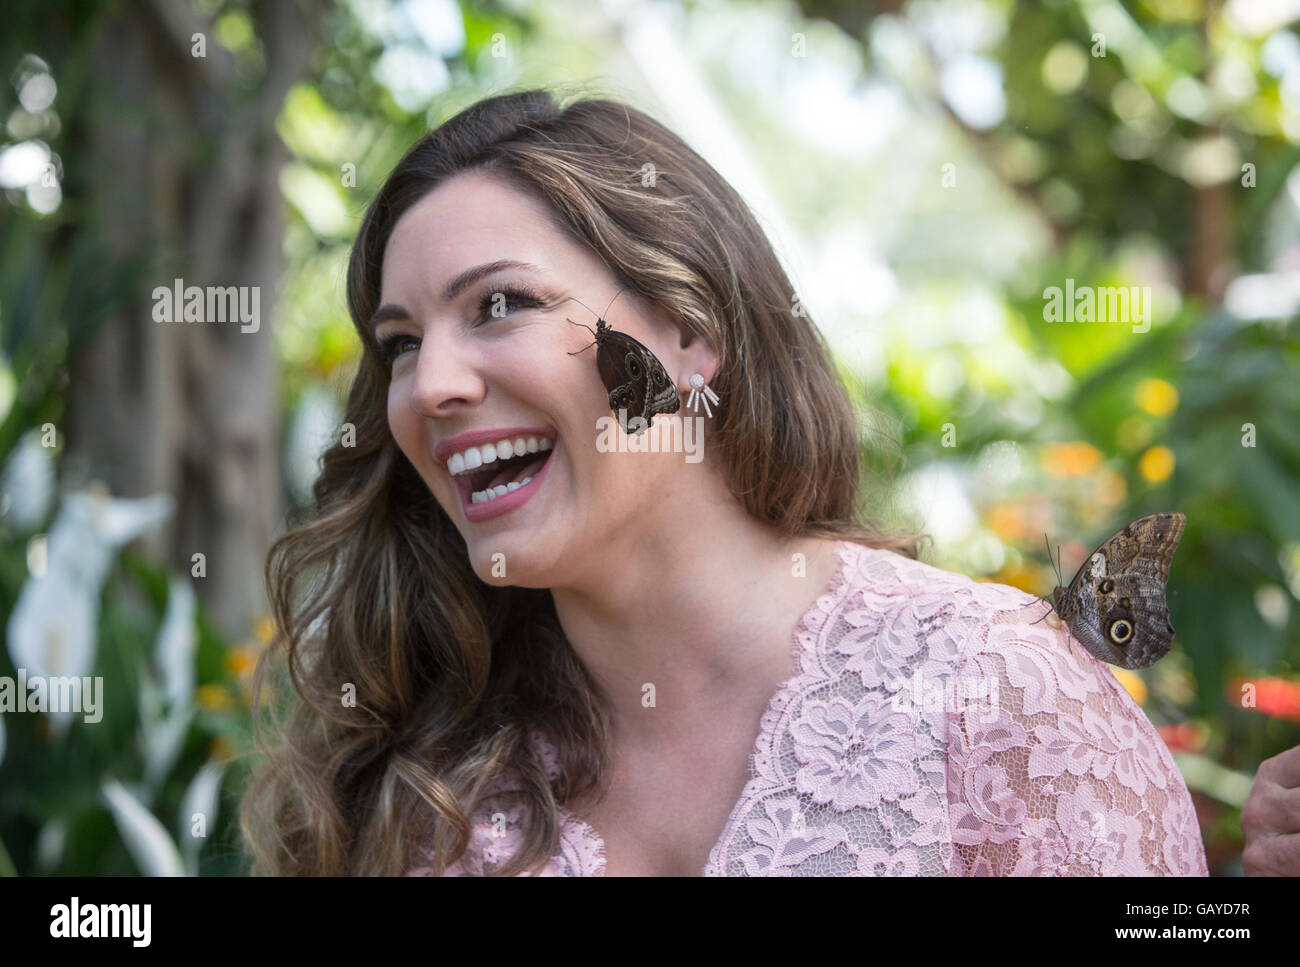 Actress,TV presenter and model in the butterfly Dome at RHS Hampton Court.She poses with a butterfly on her face - Stock Image